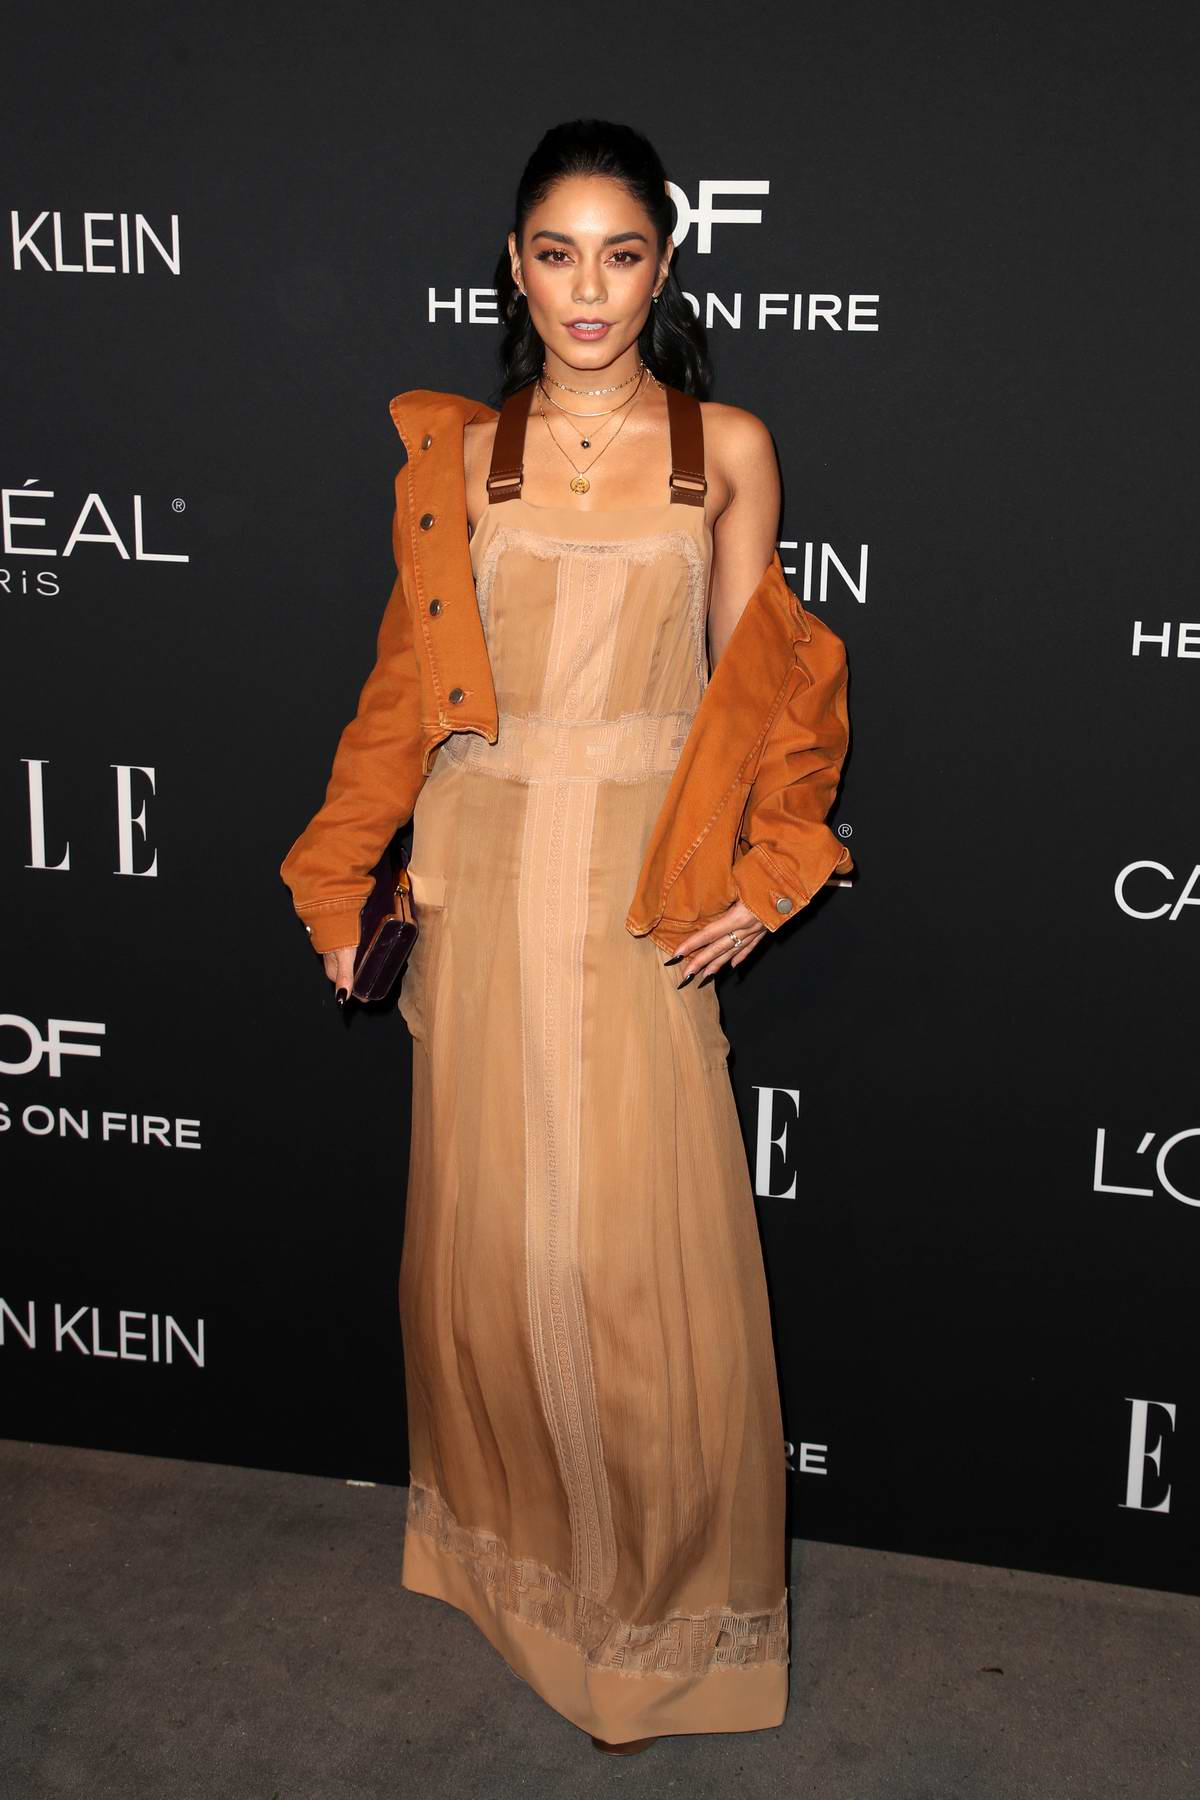 Vanessa Hudgens attends ELLE's 25th Annual Women In Hollywood Celebration at the Four Seasons Hotel in Beverly Hills, Los Angeles